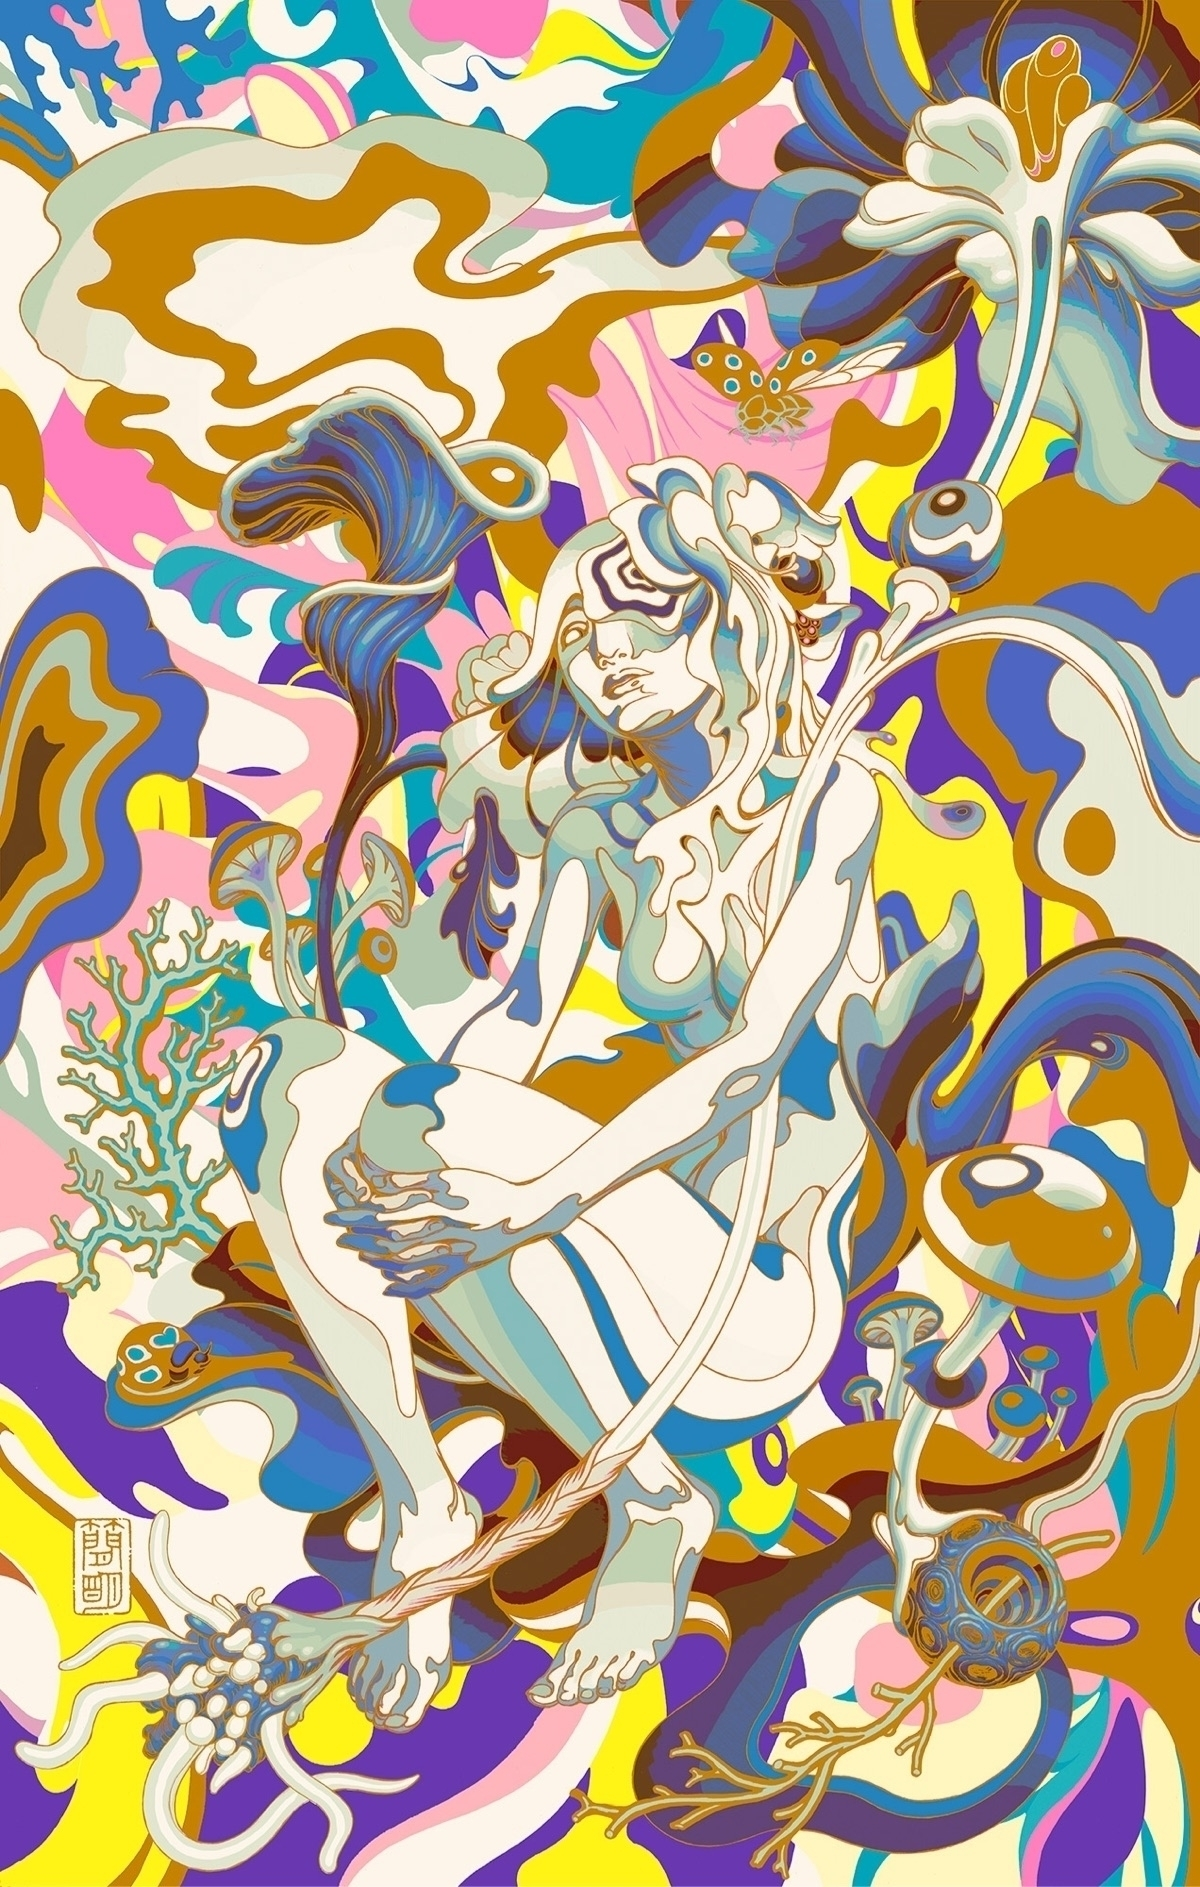 Dolly Varden, color phase - jamesjean | ello